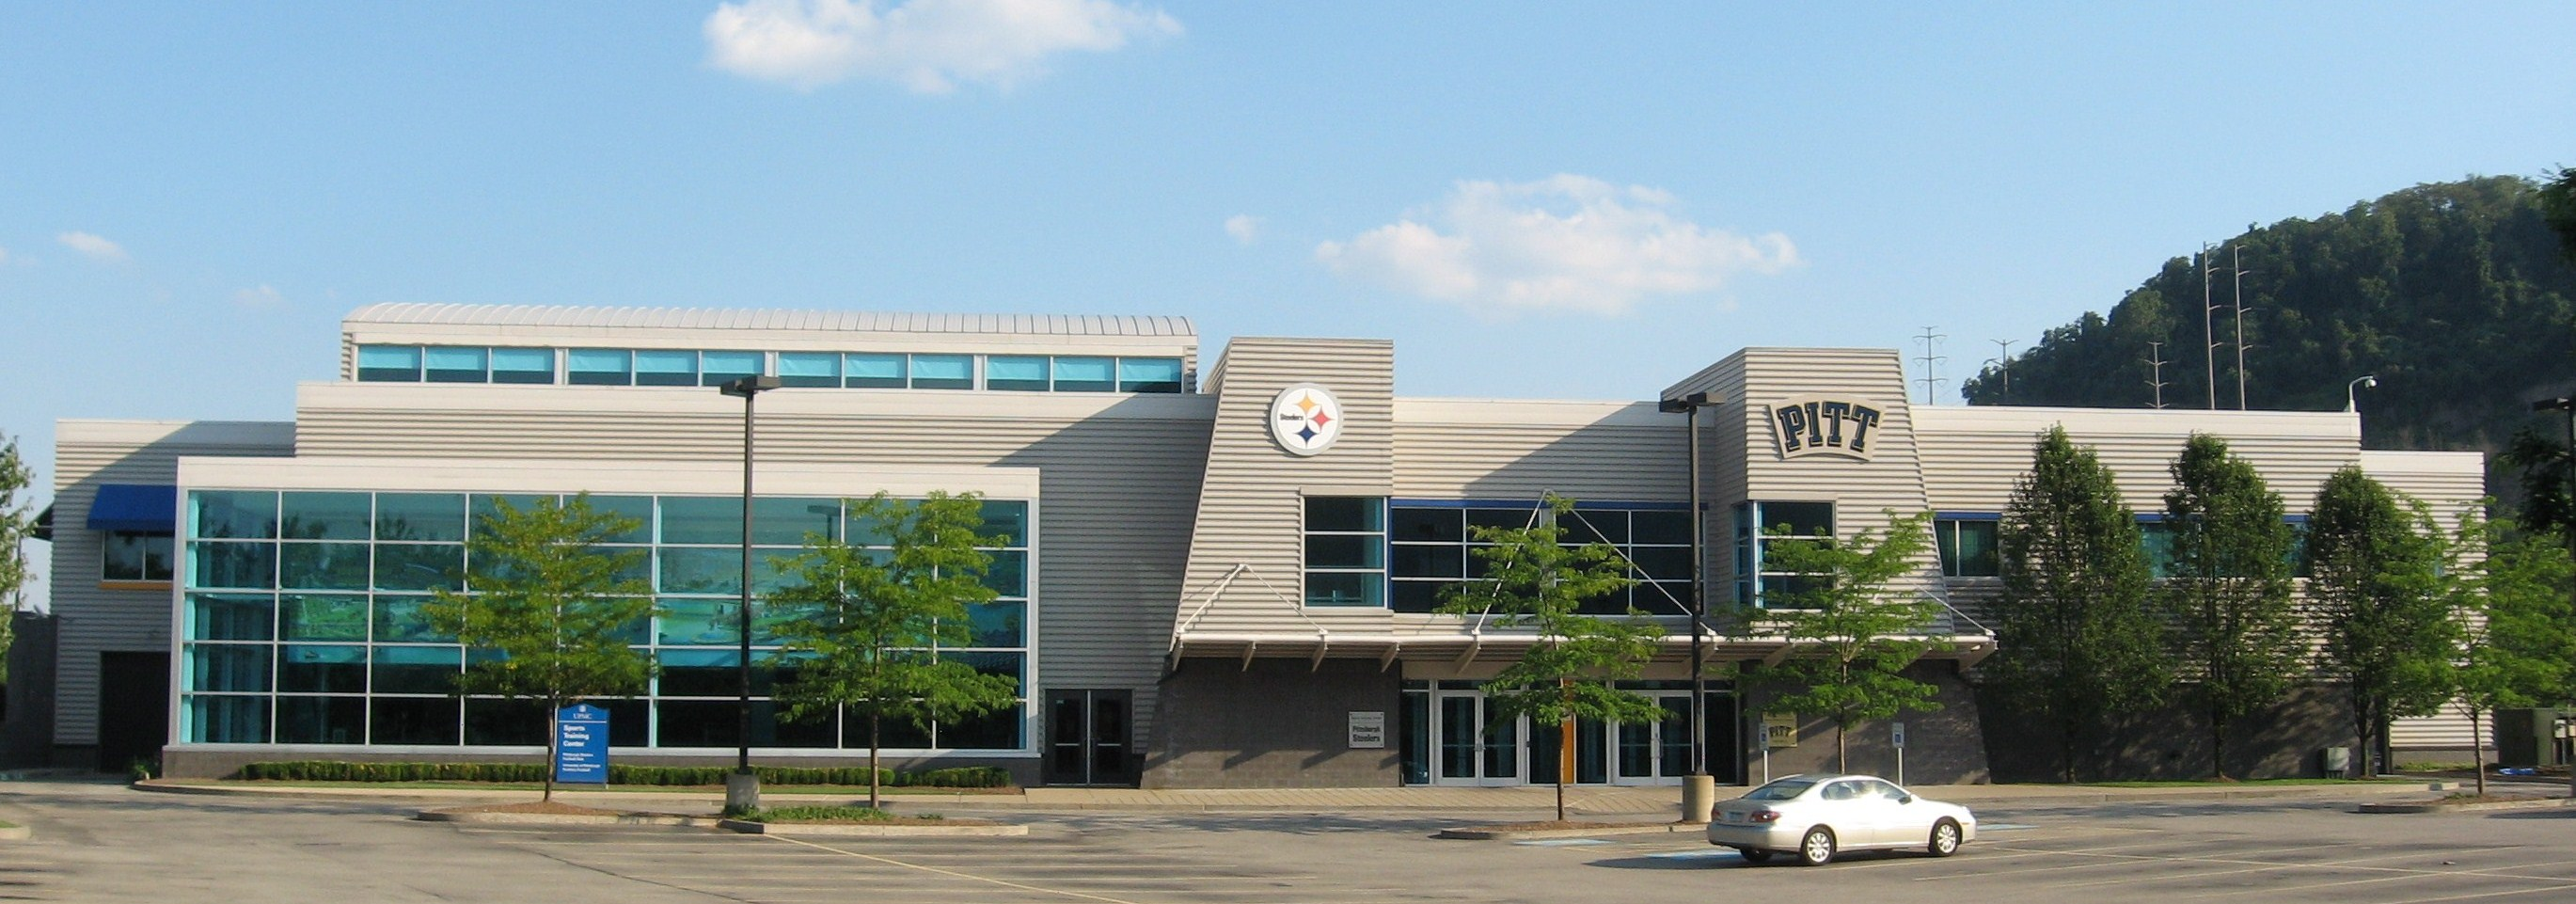 UPMC Rooney Sports Complex - Wikipedia